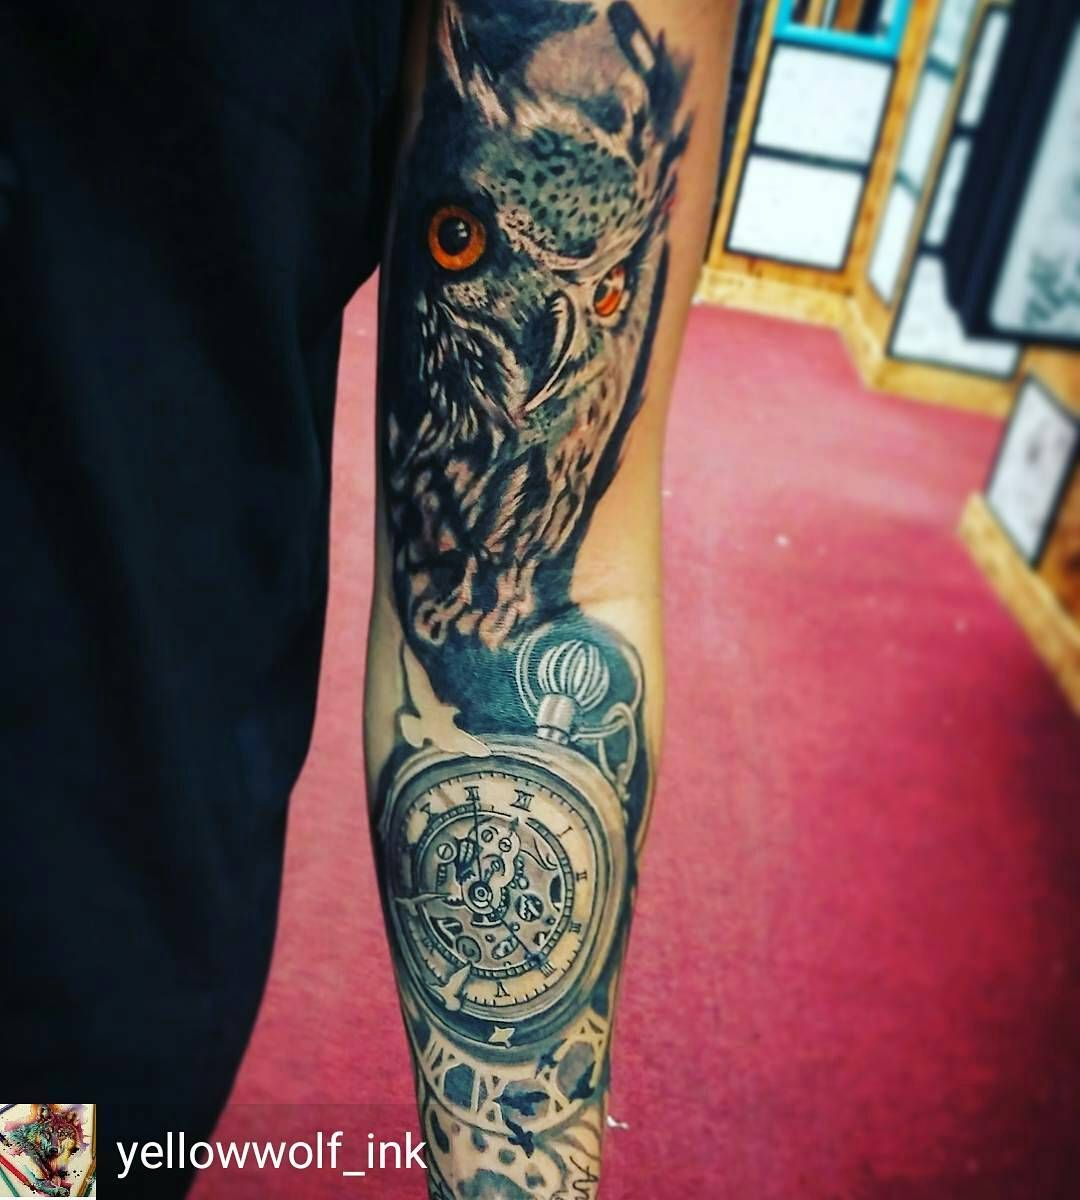 Credit To Yellowwolf Ink Owl Clock Timetattoo Watchtattoos Pocketwatch Time Timeless Watches Tattoos Thebes Watch Tattoos Tattoos Body Art Tattoos